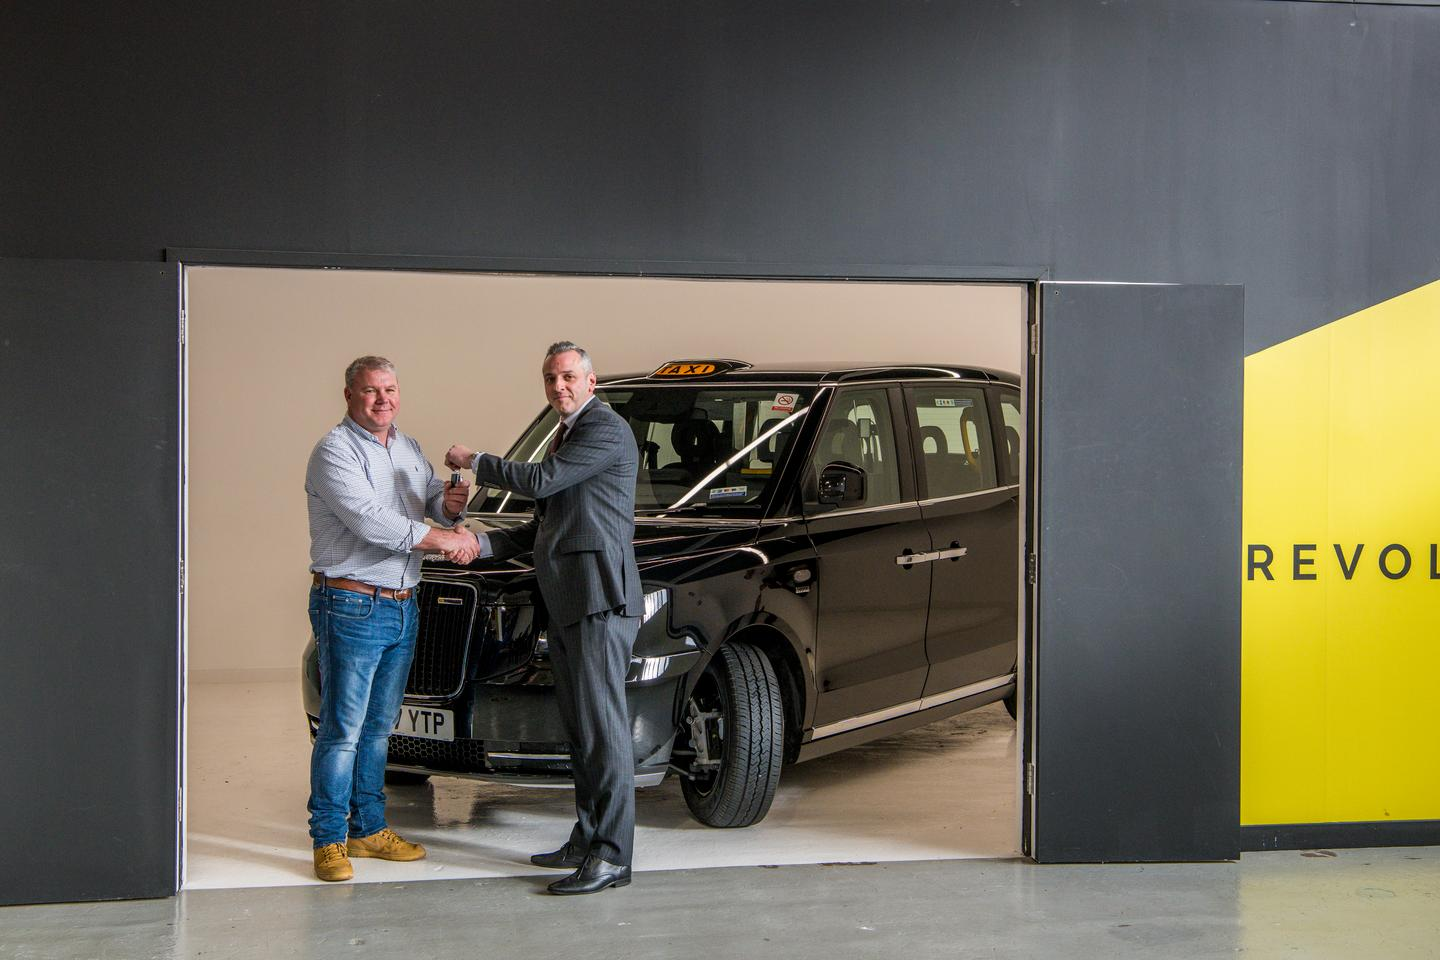 London cabby David Harris gets the keys to his new TX electric taxi from LEDV's Lorenzo Bugliari